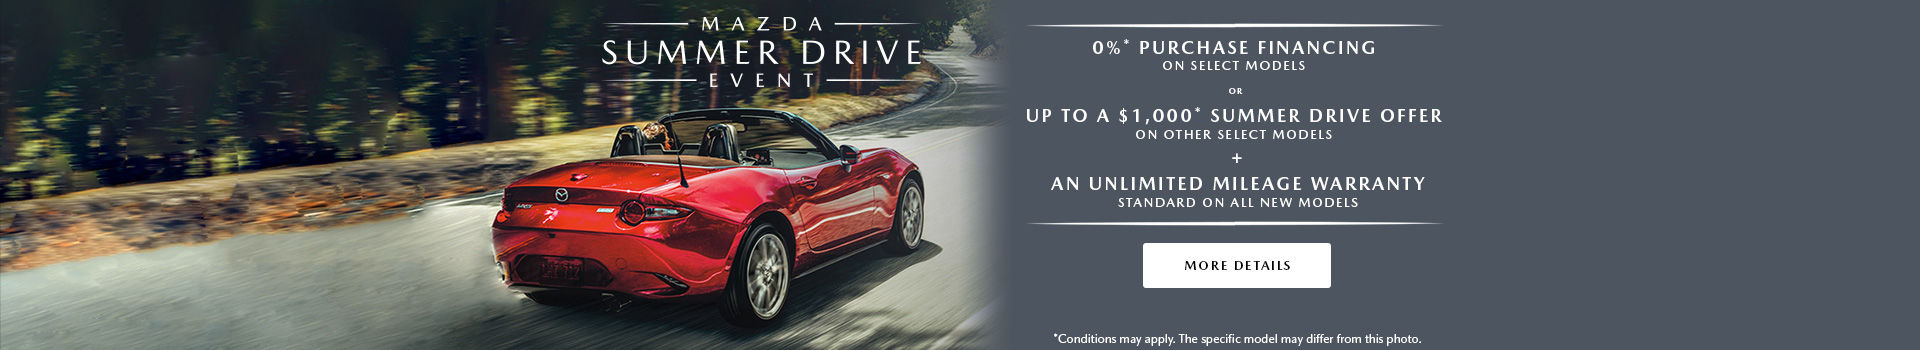 The Mazda Summer Drive Event - header